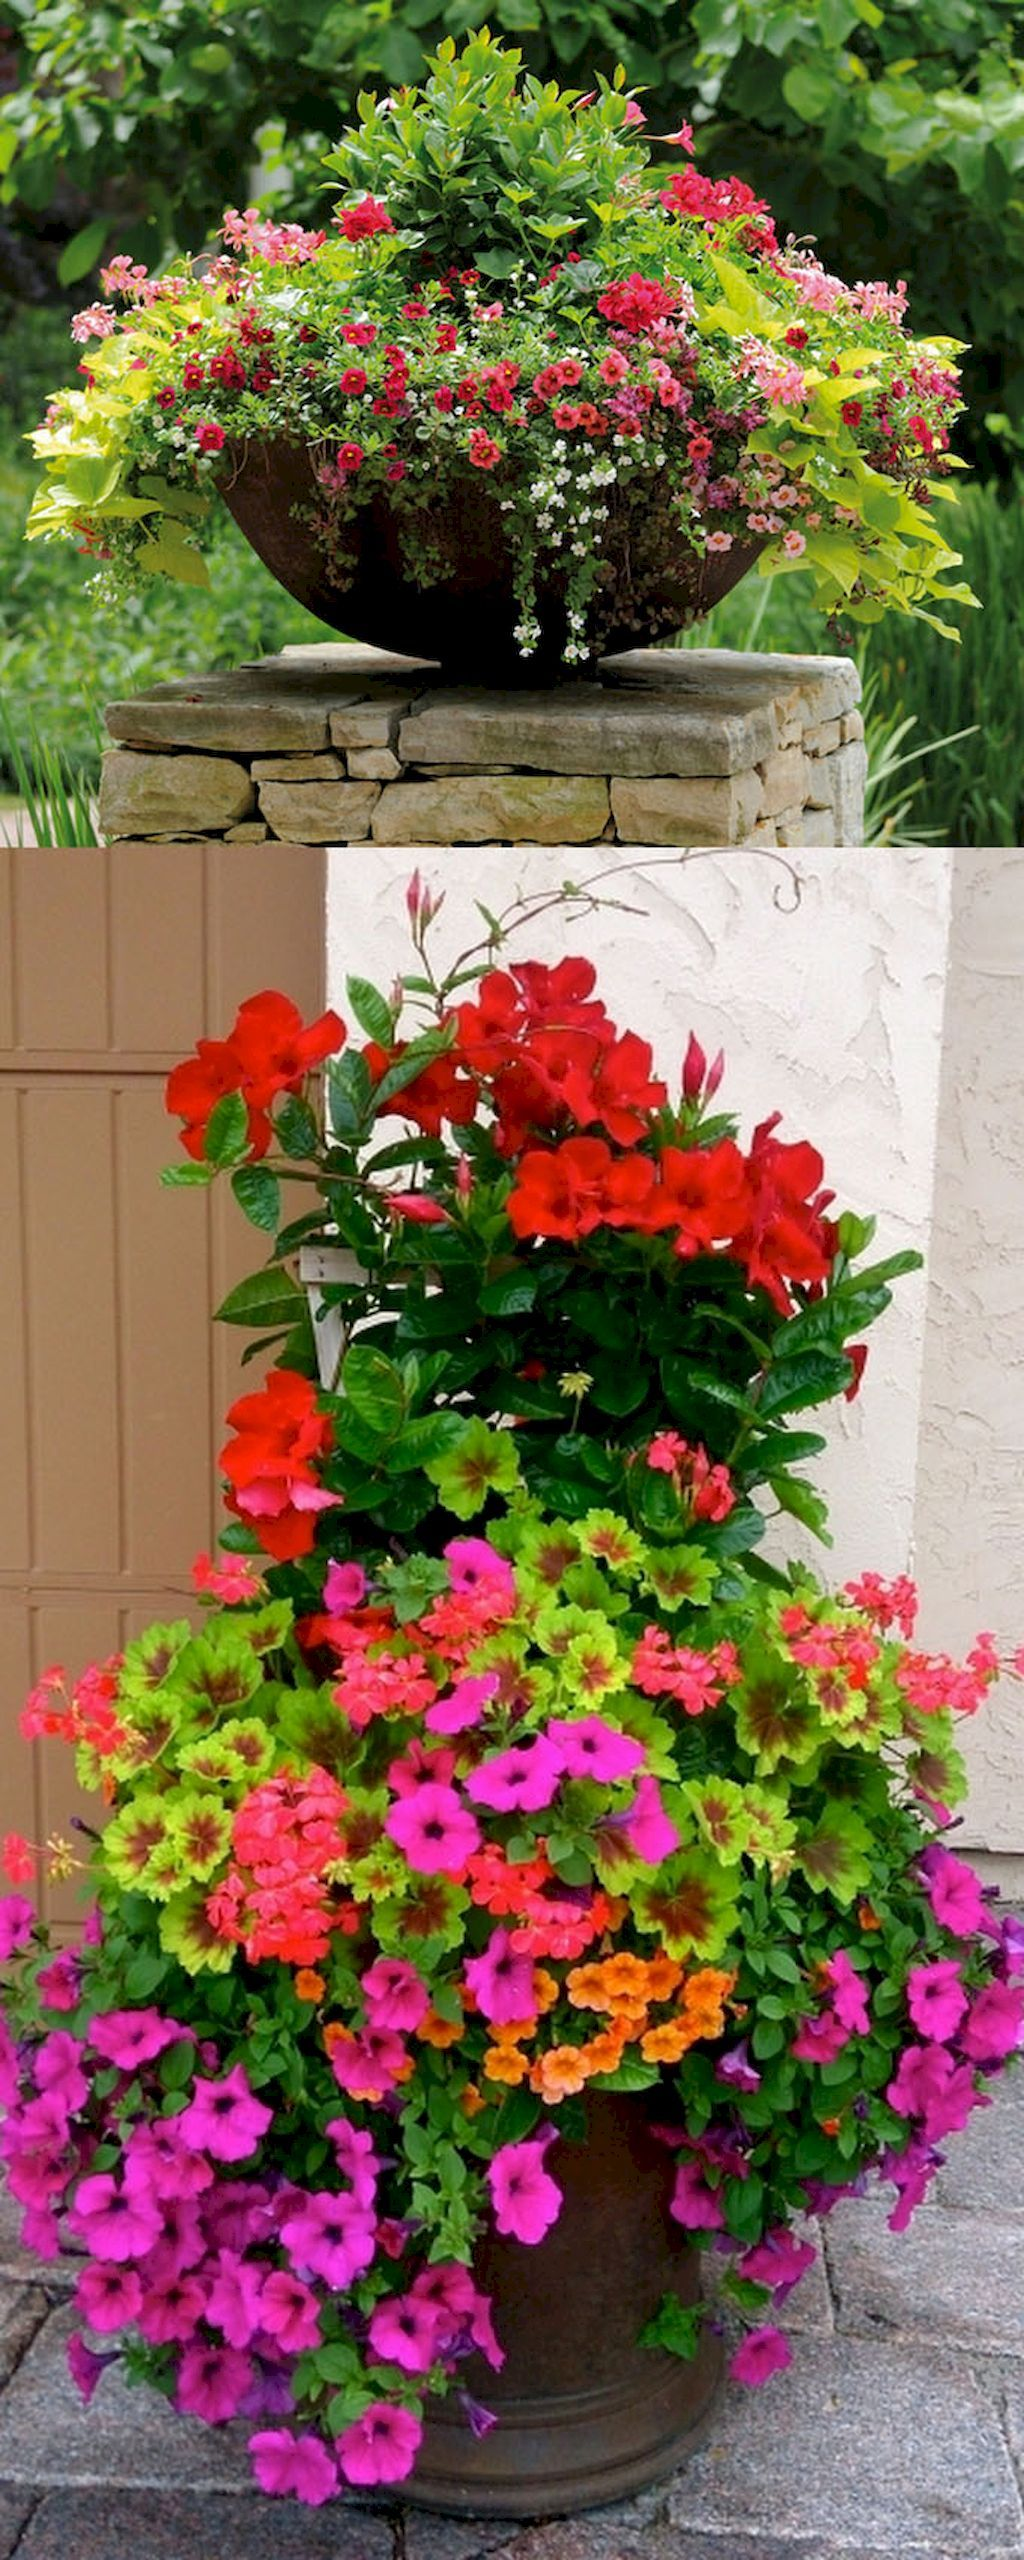 Awesome 47 Spectacular Container Gardening Ideas Https Besideroom Com 2017 06 16 47 Spectacular Porch Flowers Container Gardening Flowers Front Porch Flowers